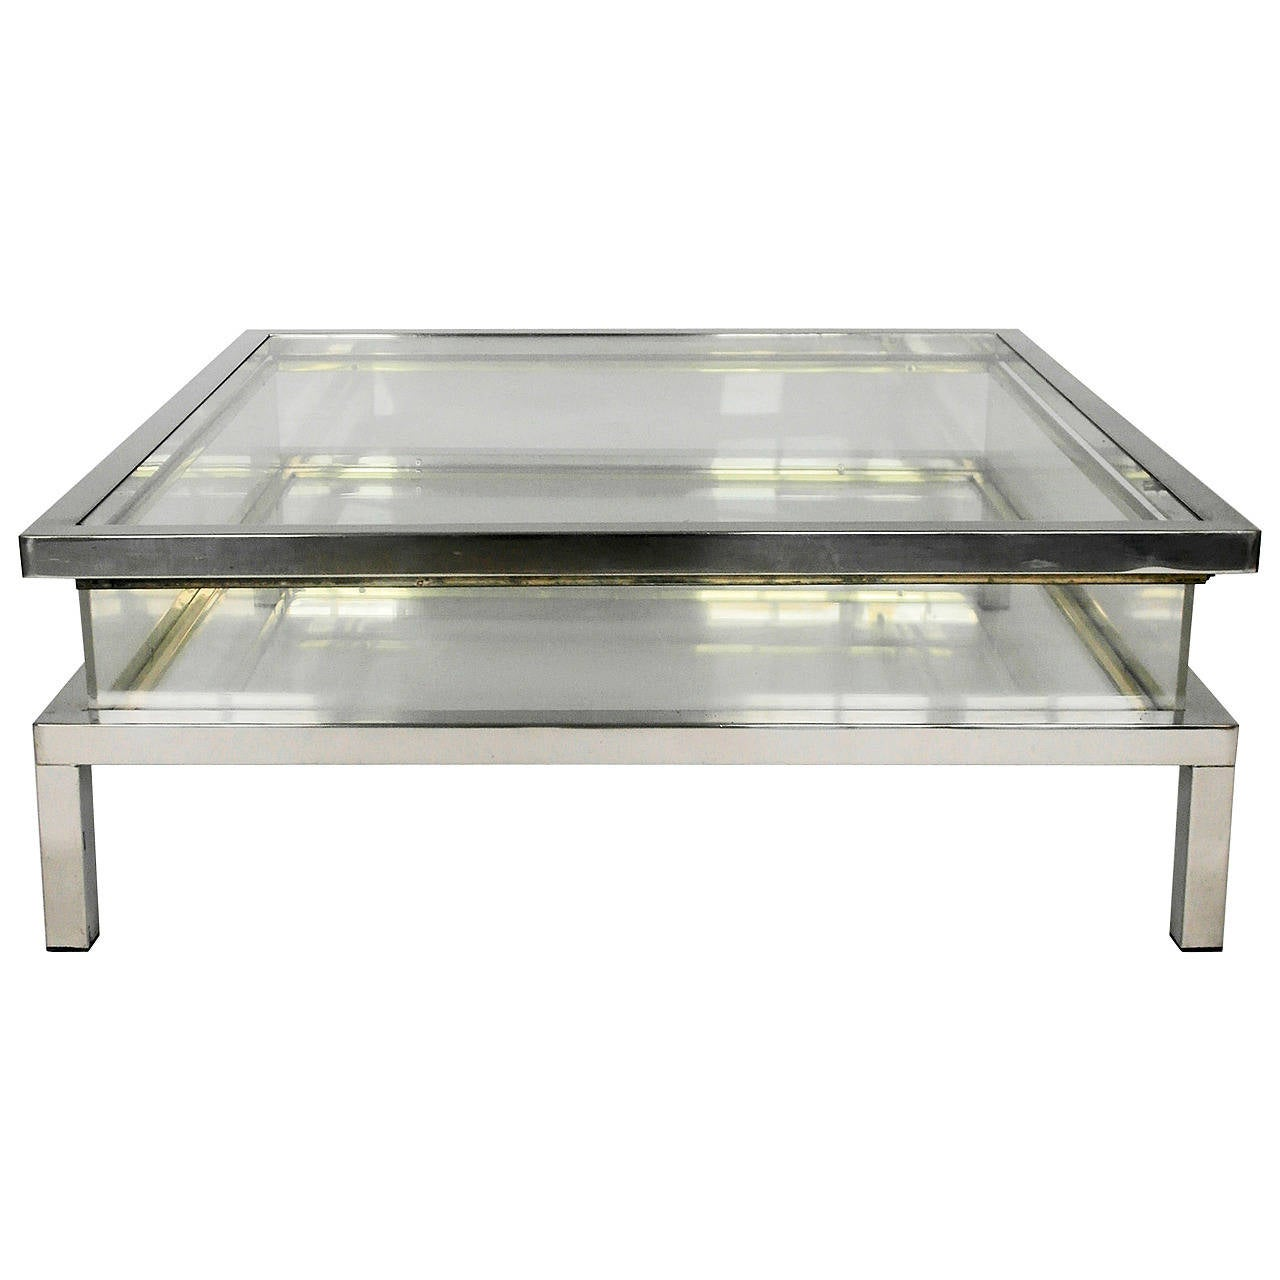 Mid century chrome and perspex sliding box coffee table for sale at 1stdibs Designer glass coffee tables